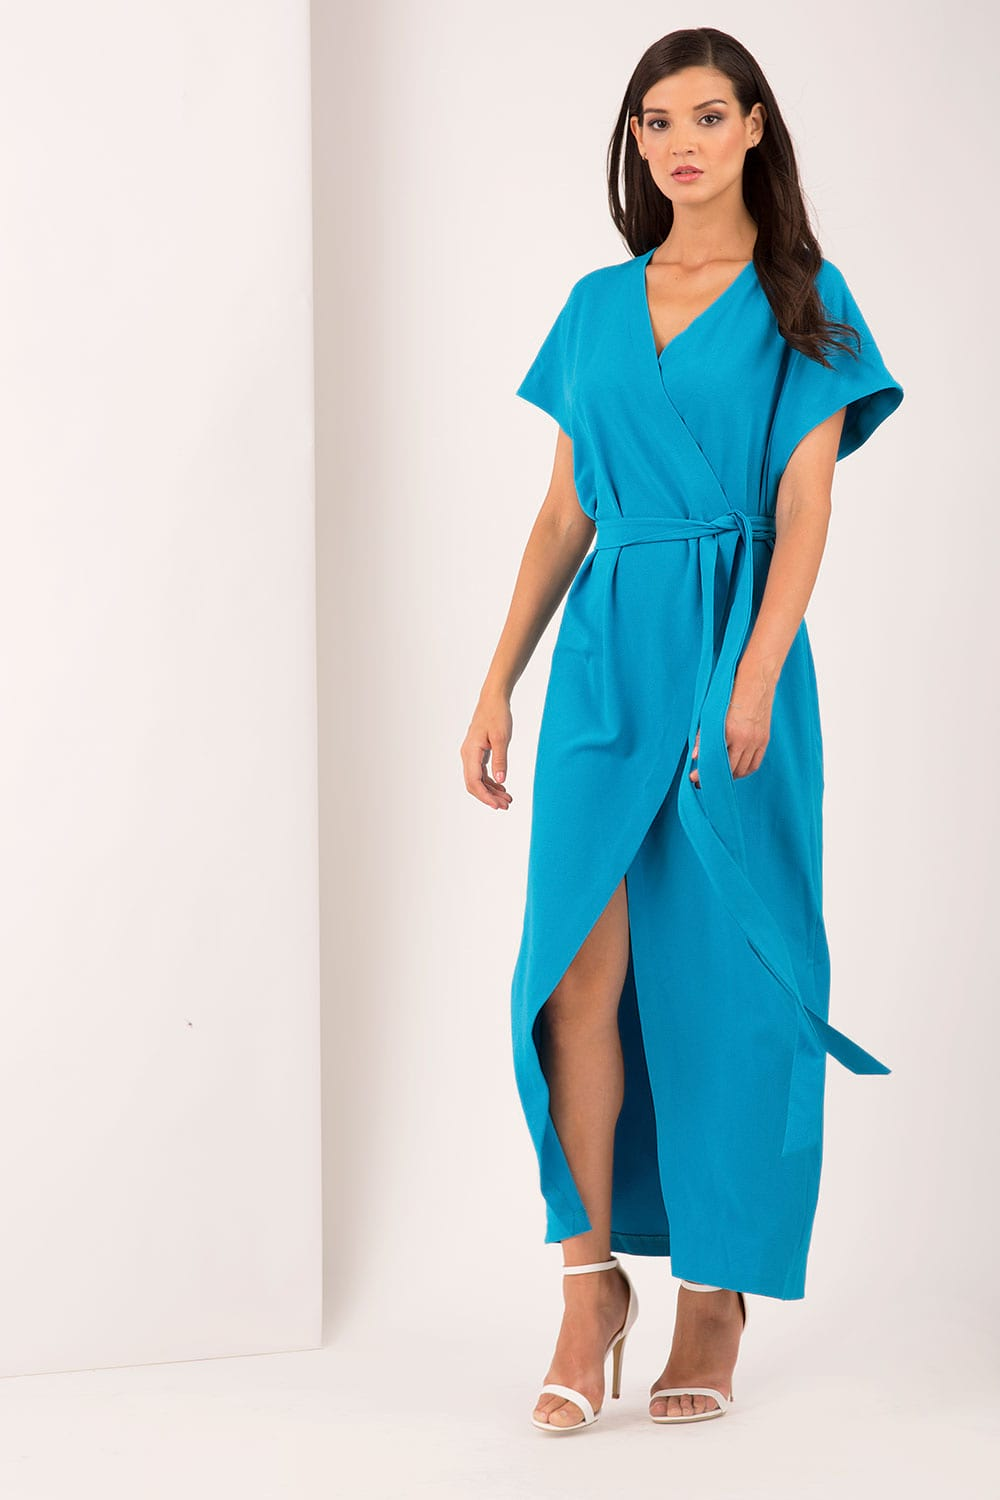 Hybrid Fashion 1318 Tess Kimono Wrap Dress